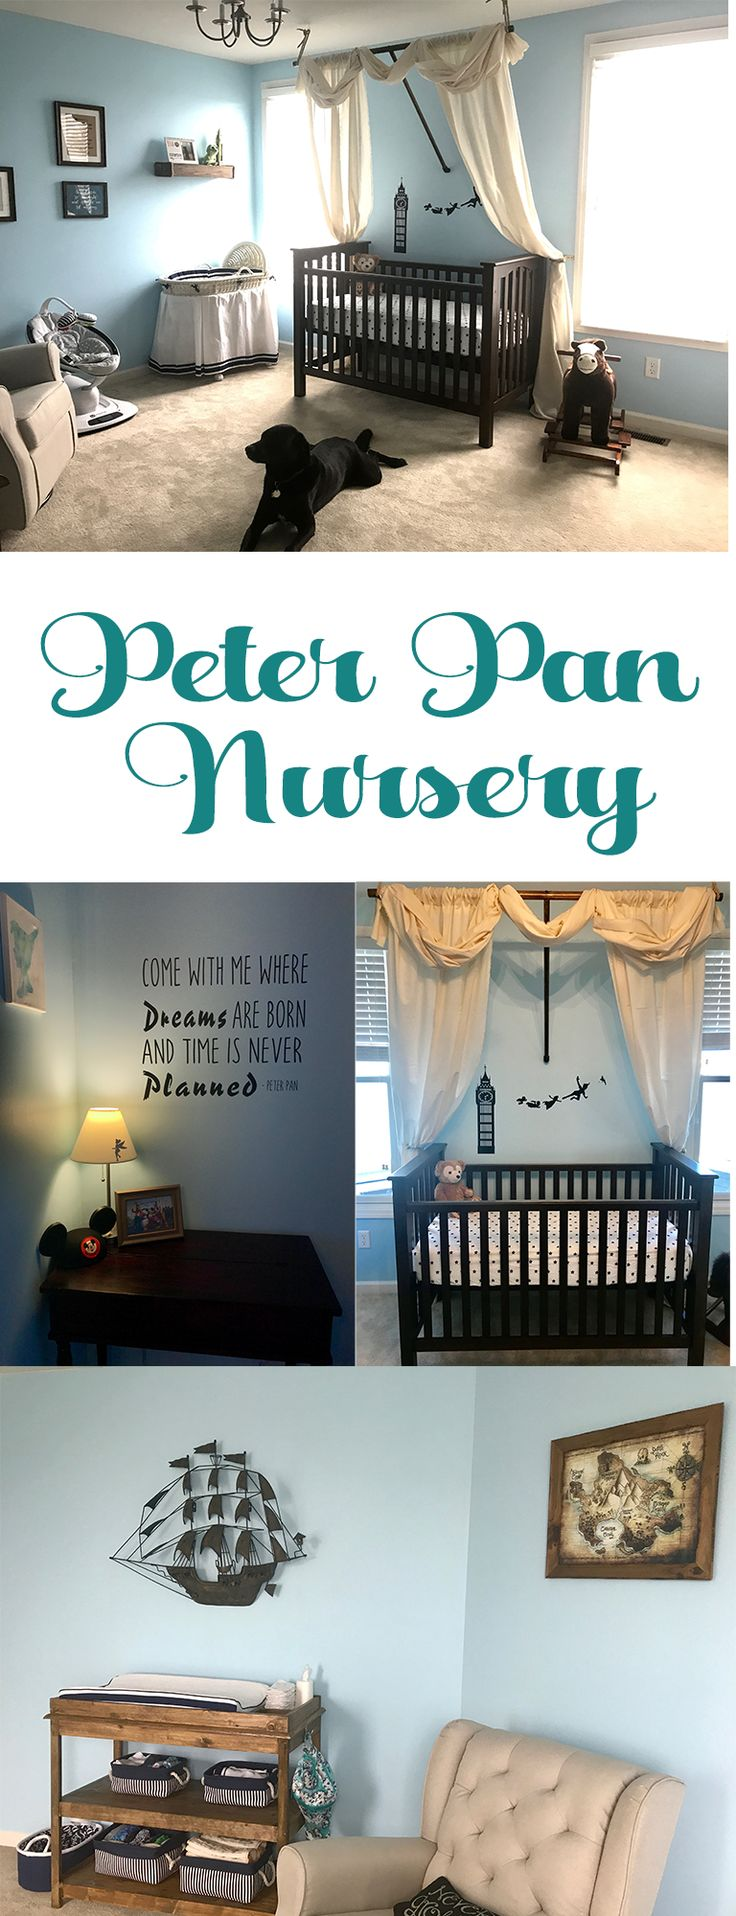 It's off to Neverland with this Peter Pan Disney Boys Nursery! Gather inspiration and see how we created our baby boys room.